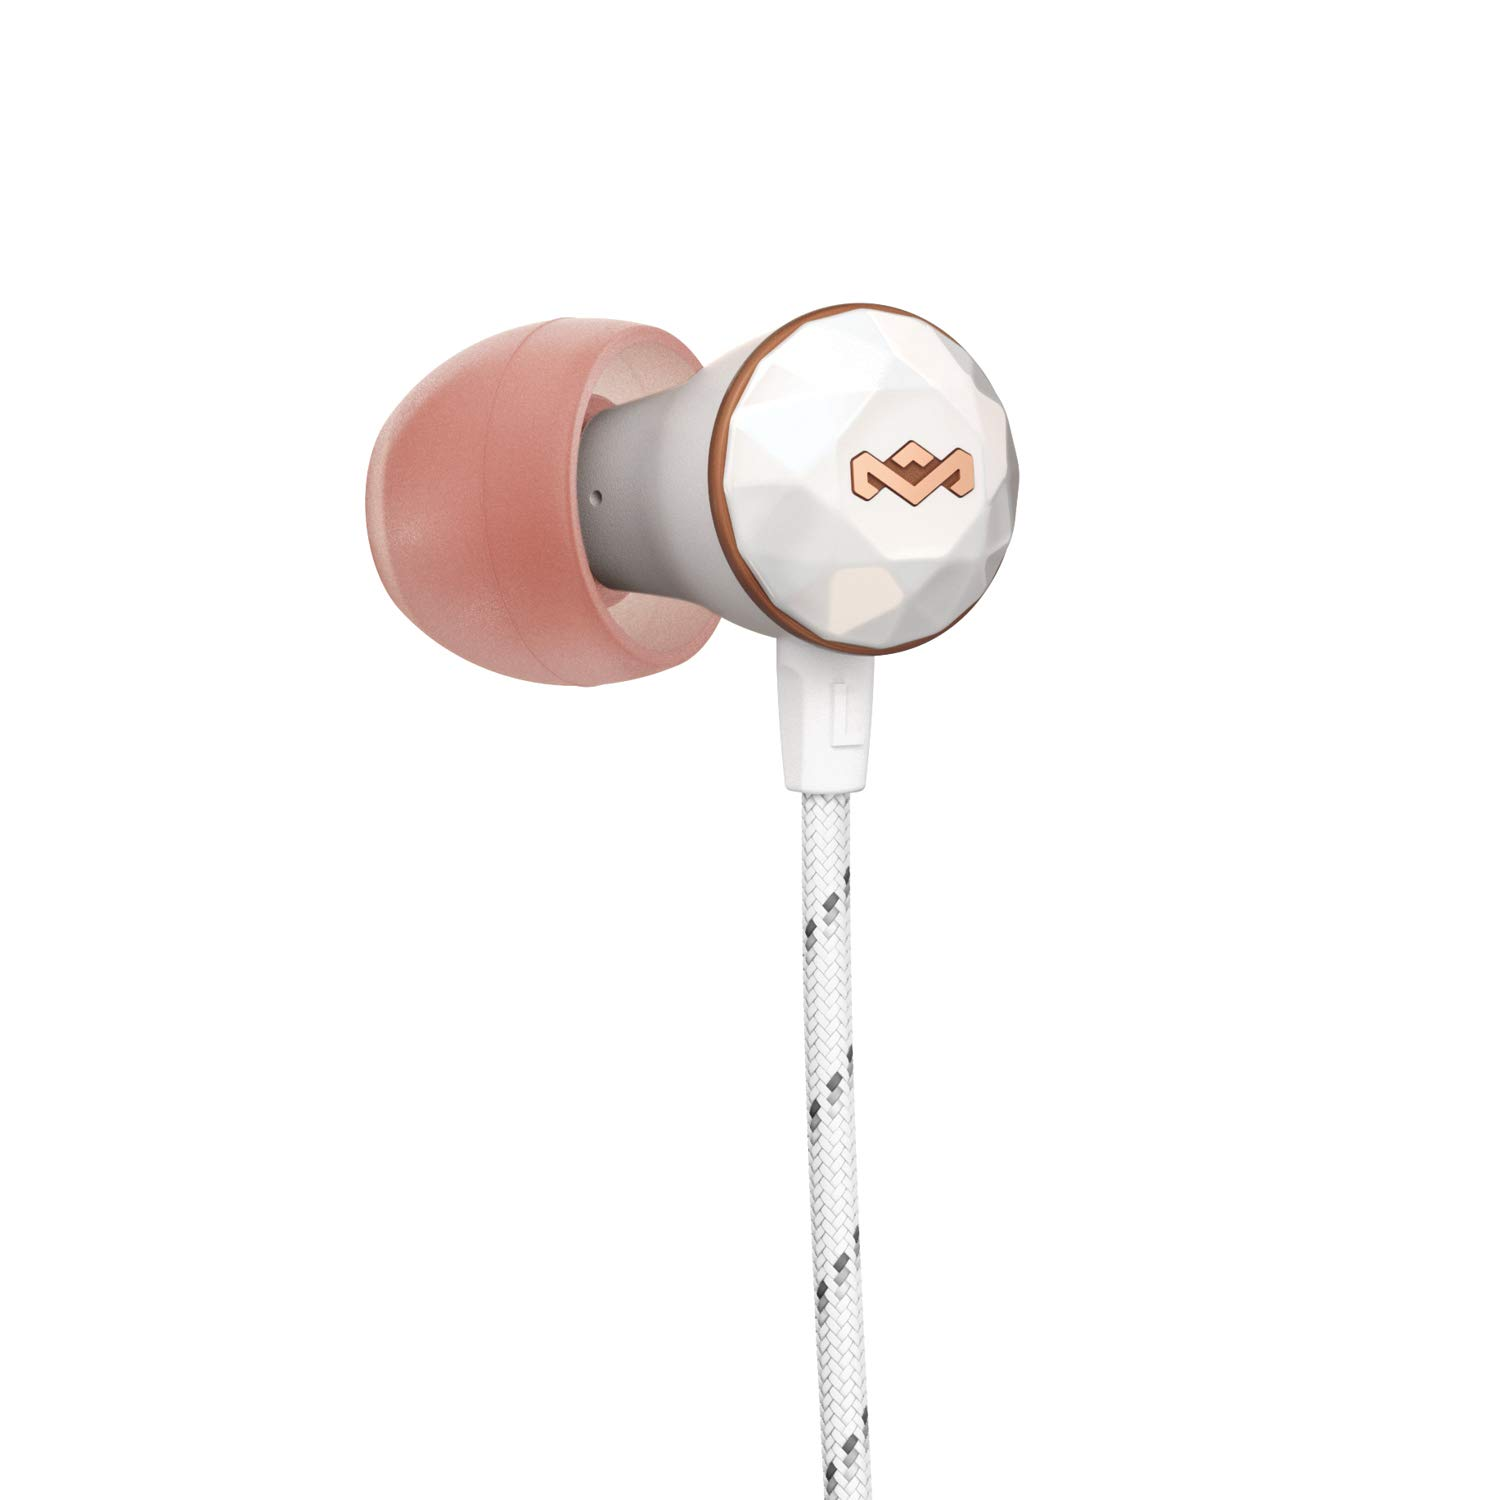 House Marley Headphones Cancelling Microphone